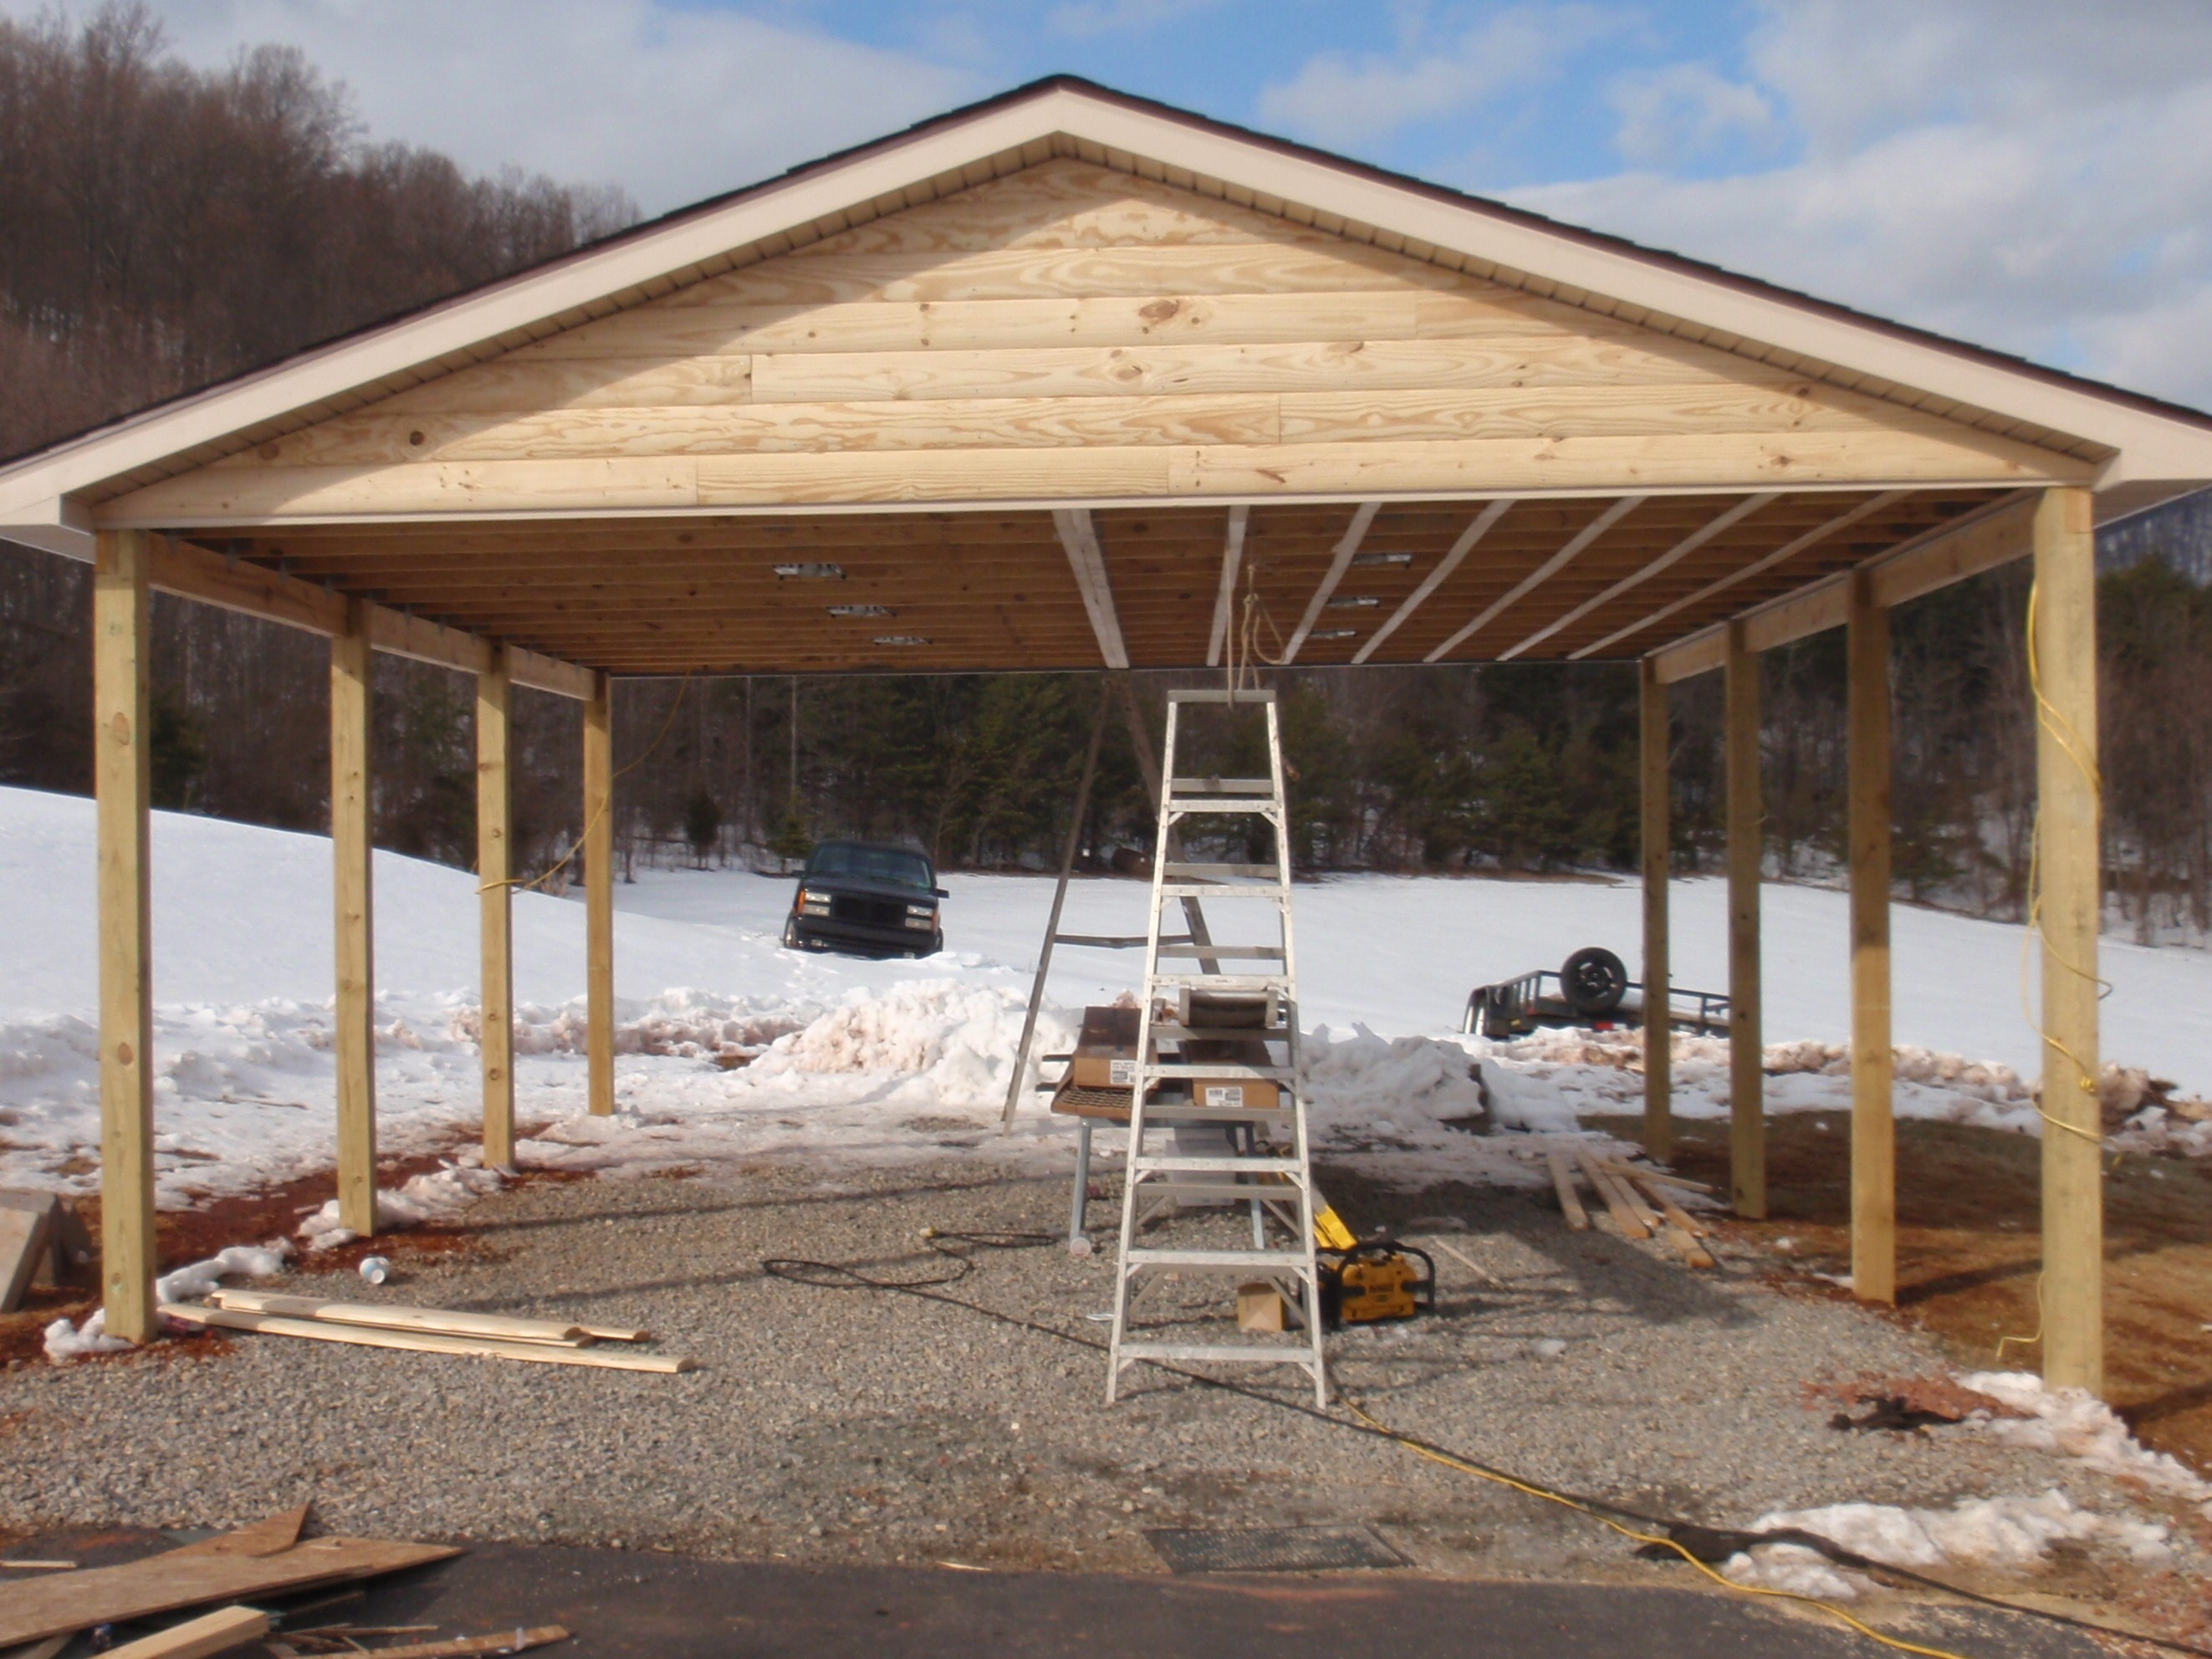 Double d contracting log siding carport to match home for Log carports